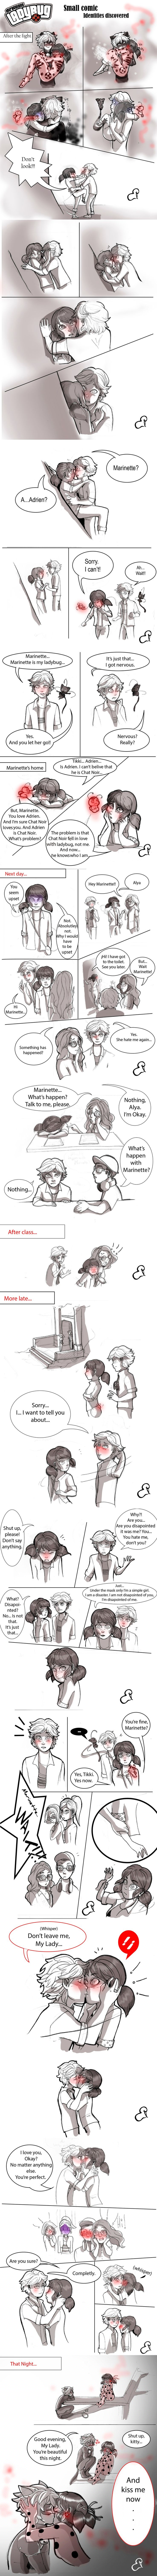 best images about drawings on Pinterest Anime love Chibi and